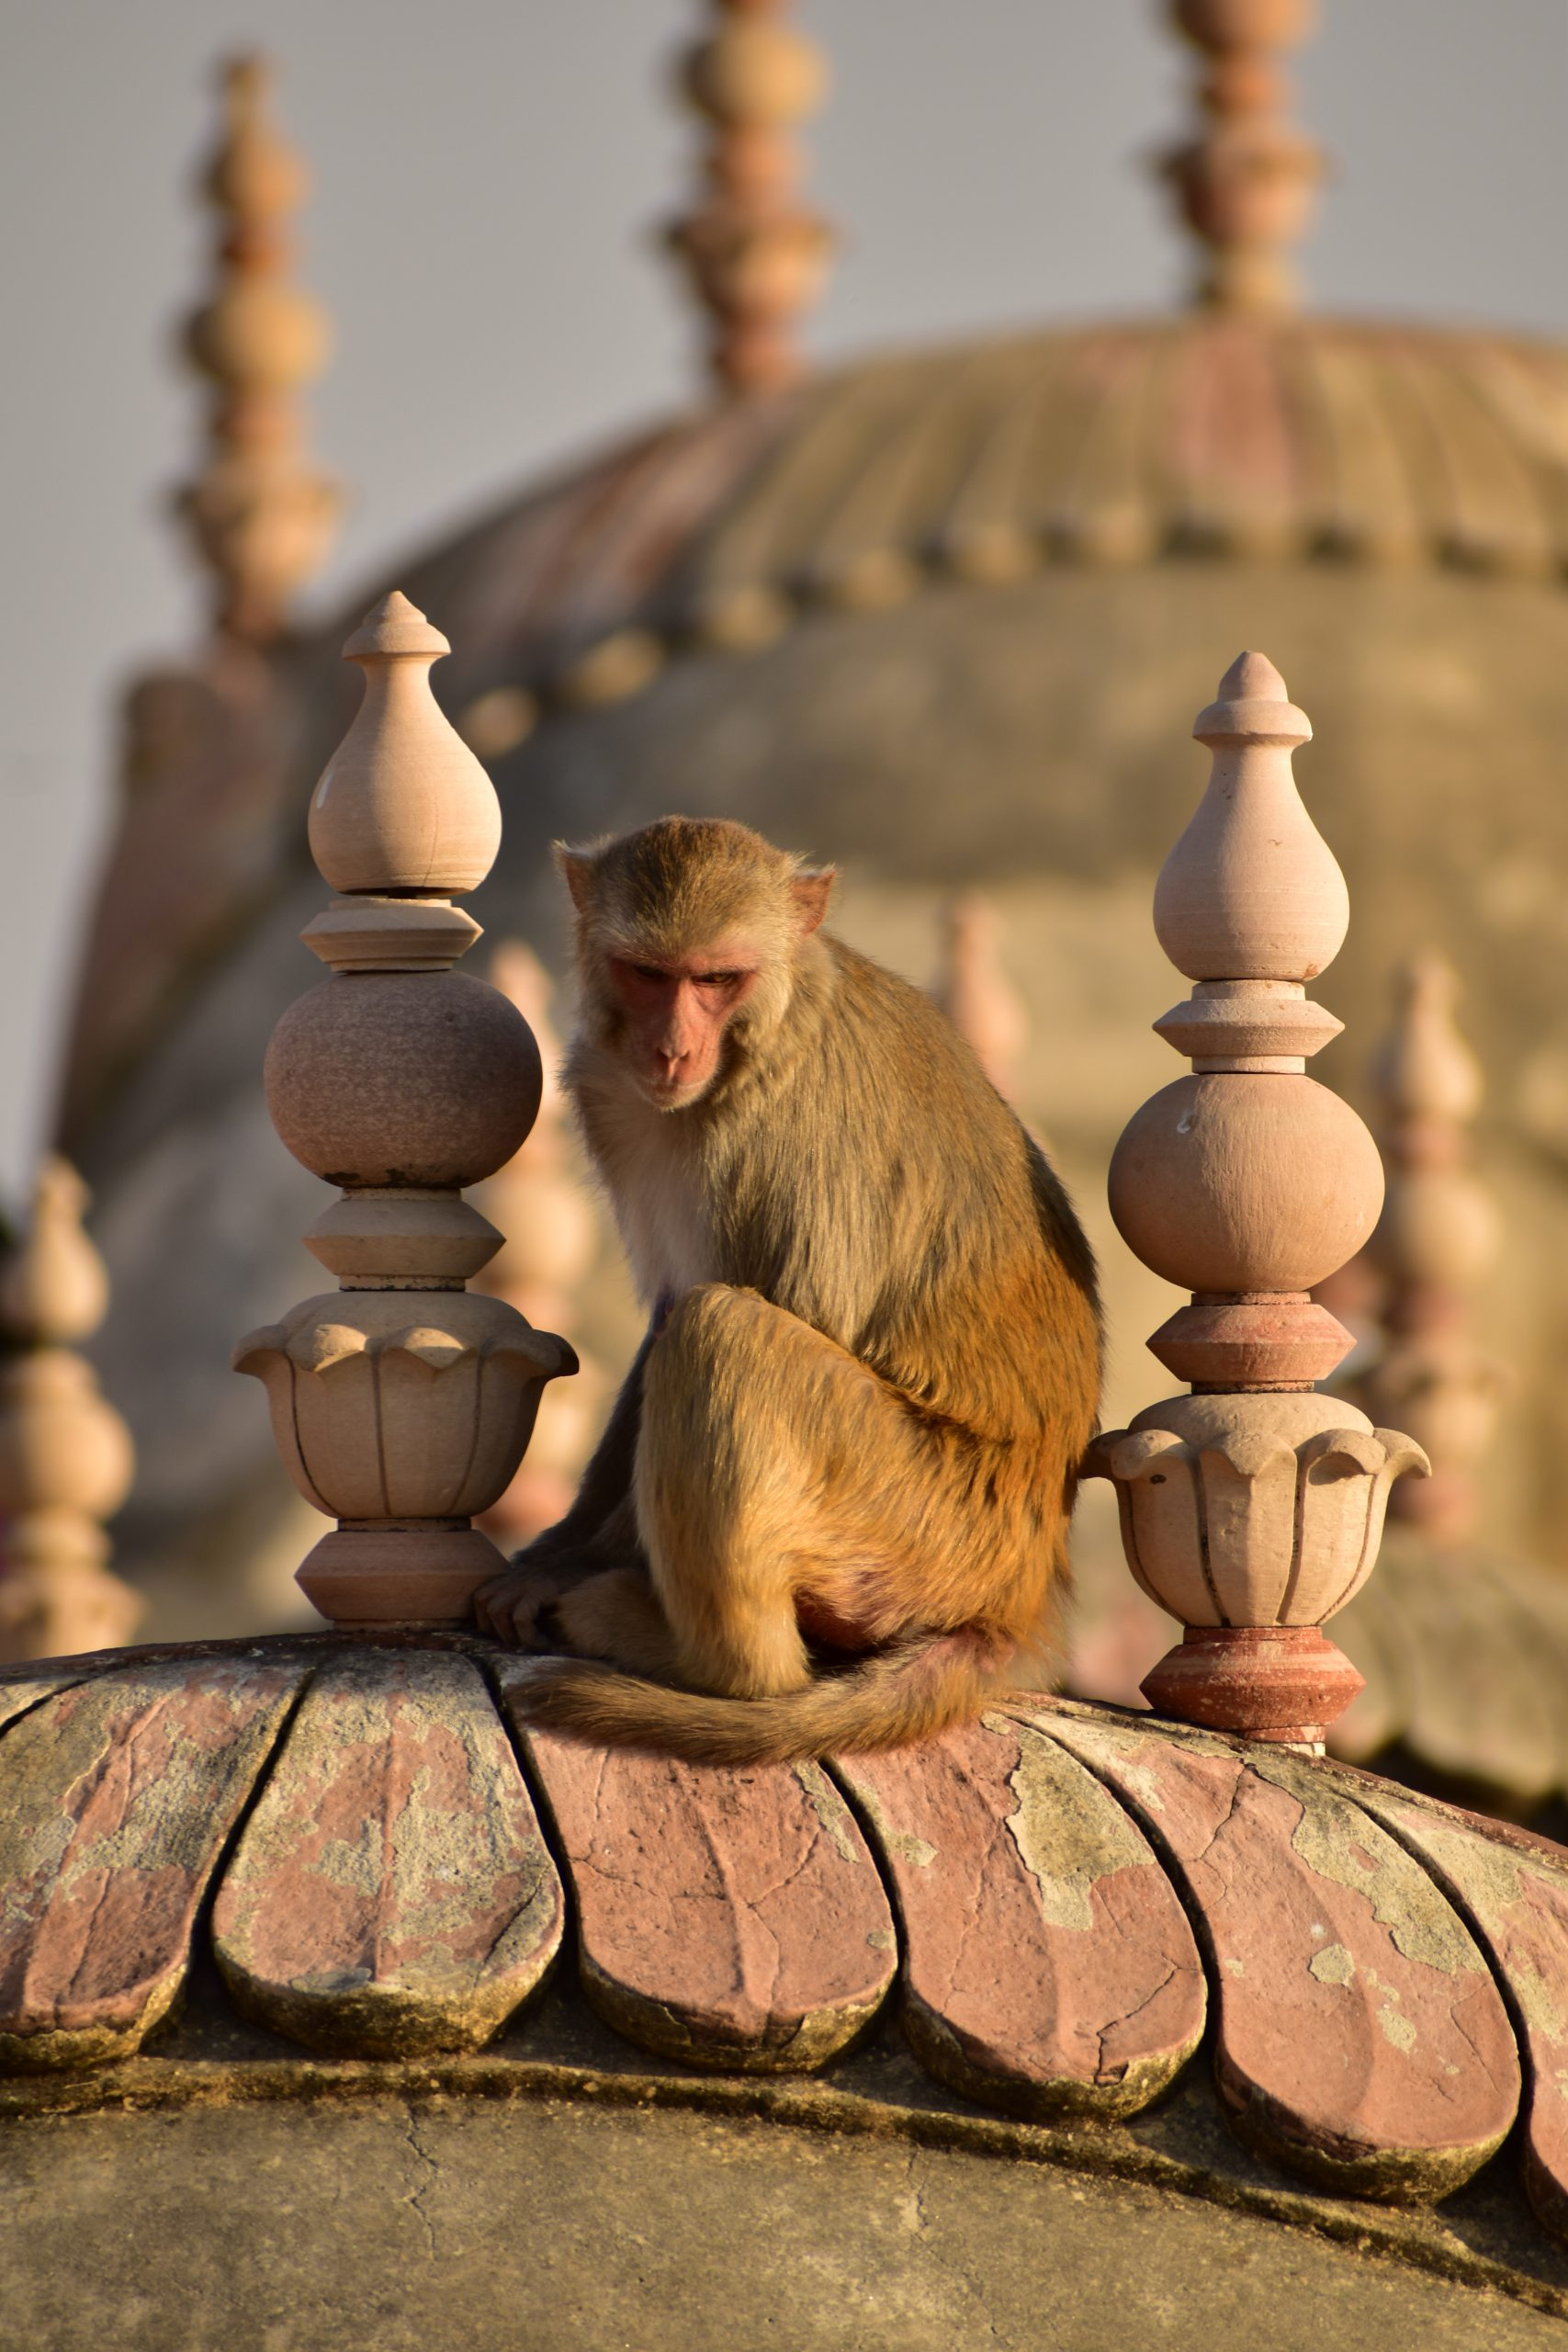 A monkey at Nahargarh fort